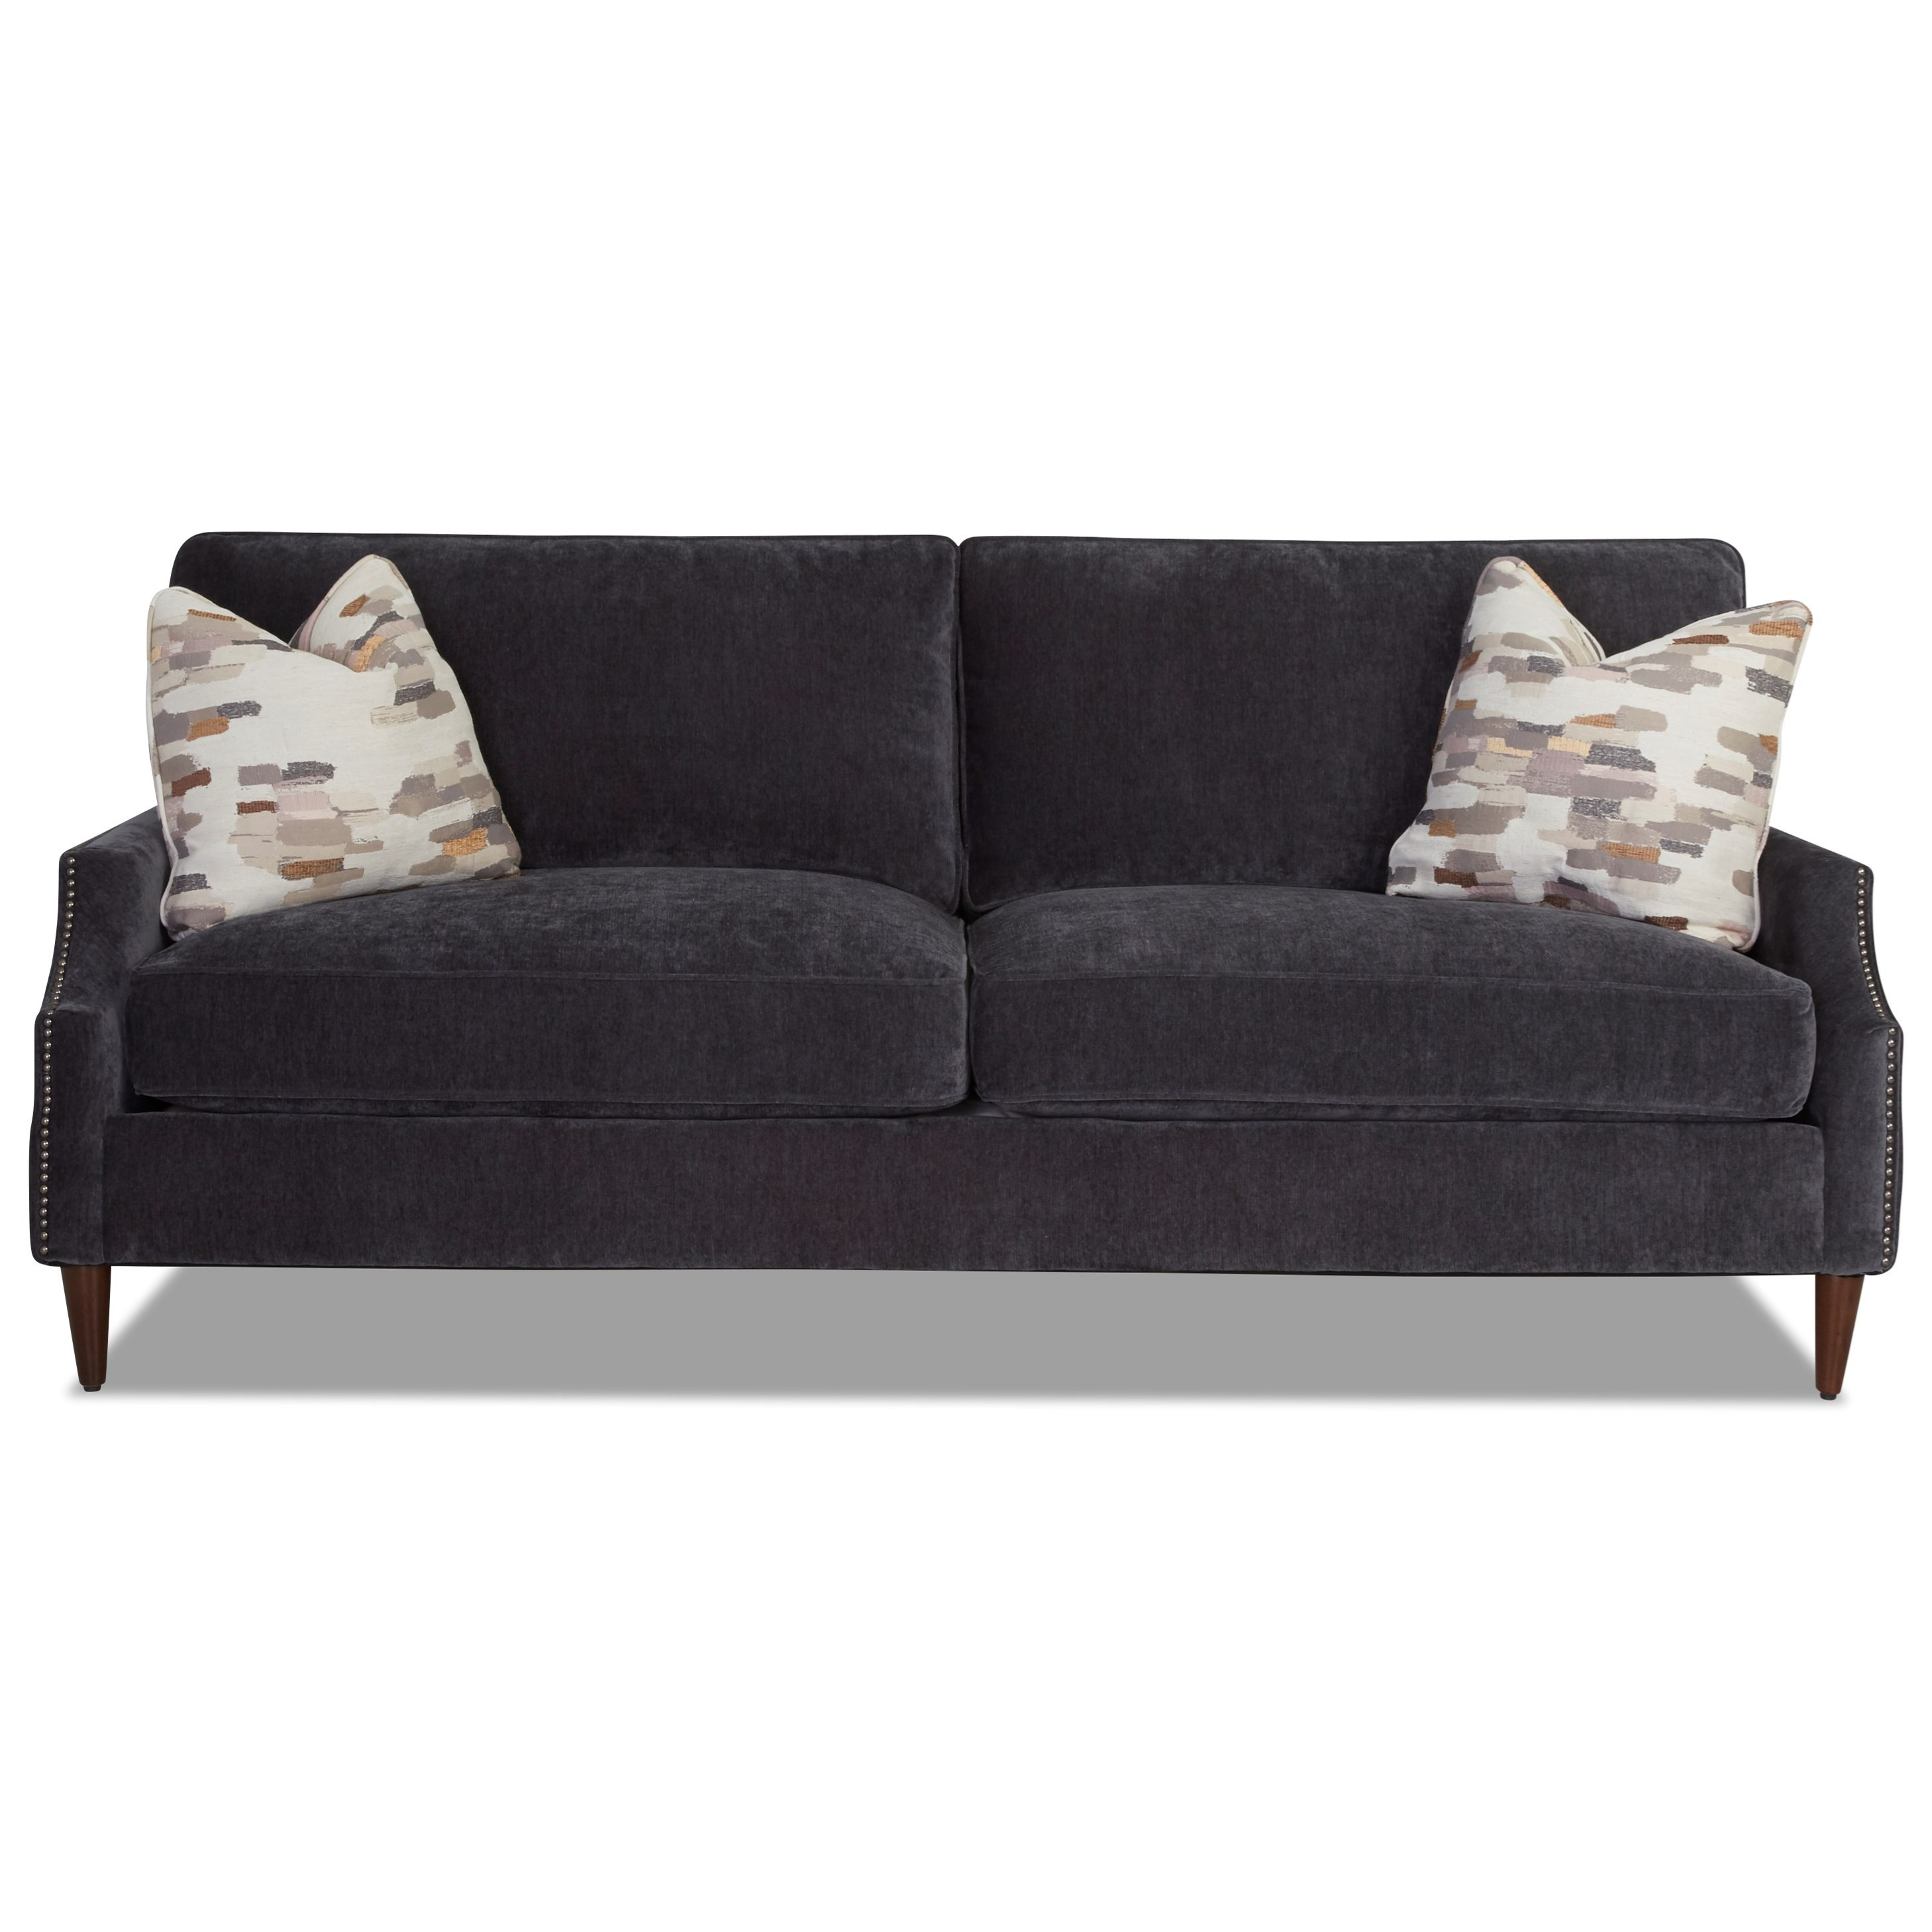 Grammercy 2-Over-2 Sofa with Arm Pillows by Klaussner at Johnny Janosik